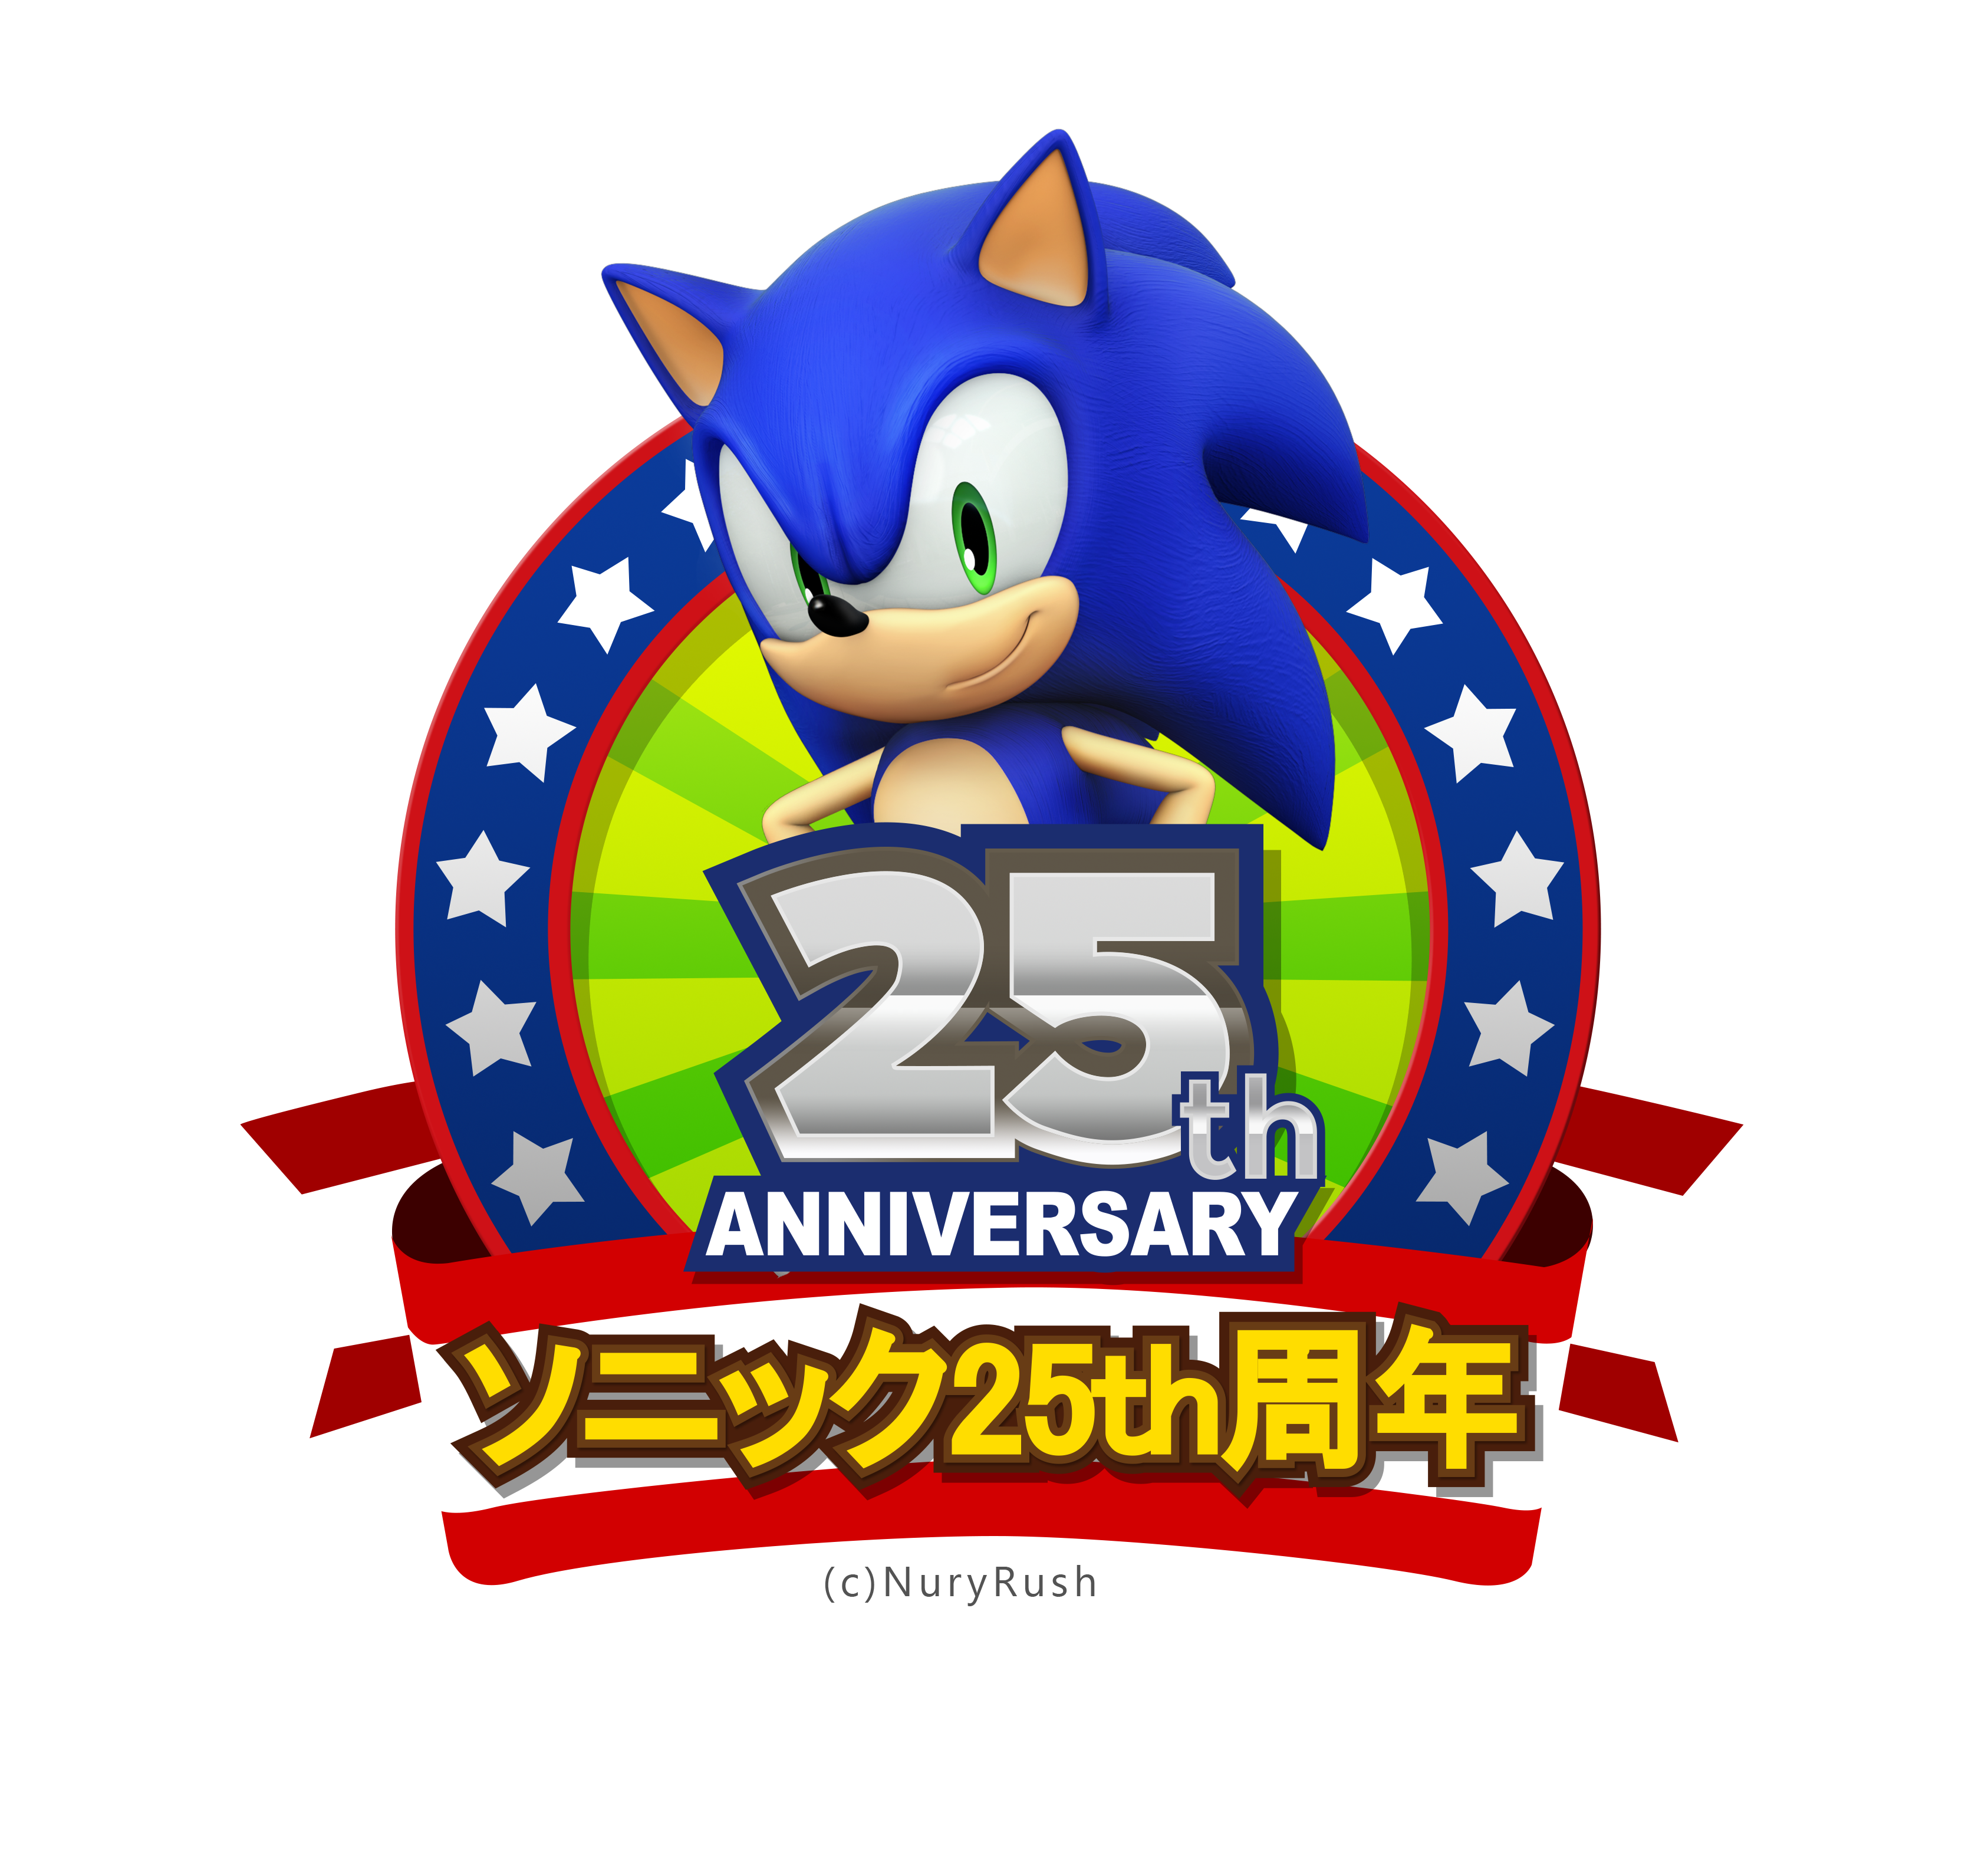 Sonic S 25th Anniversary Logo Event Edition By Nuryrush On Deviantart